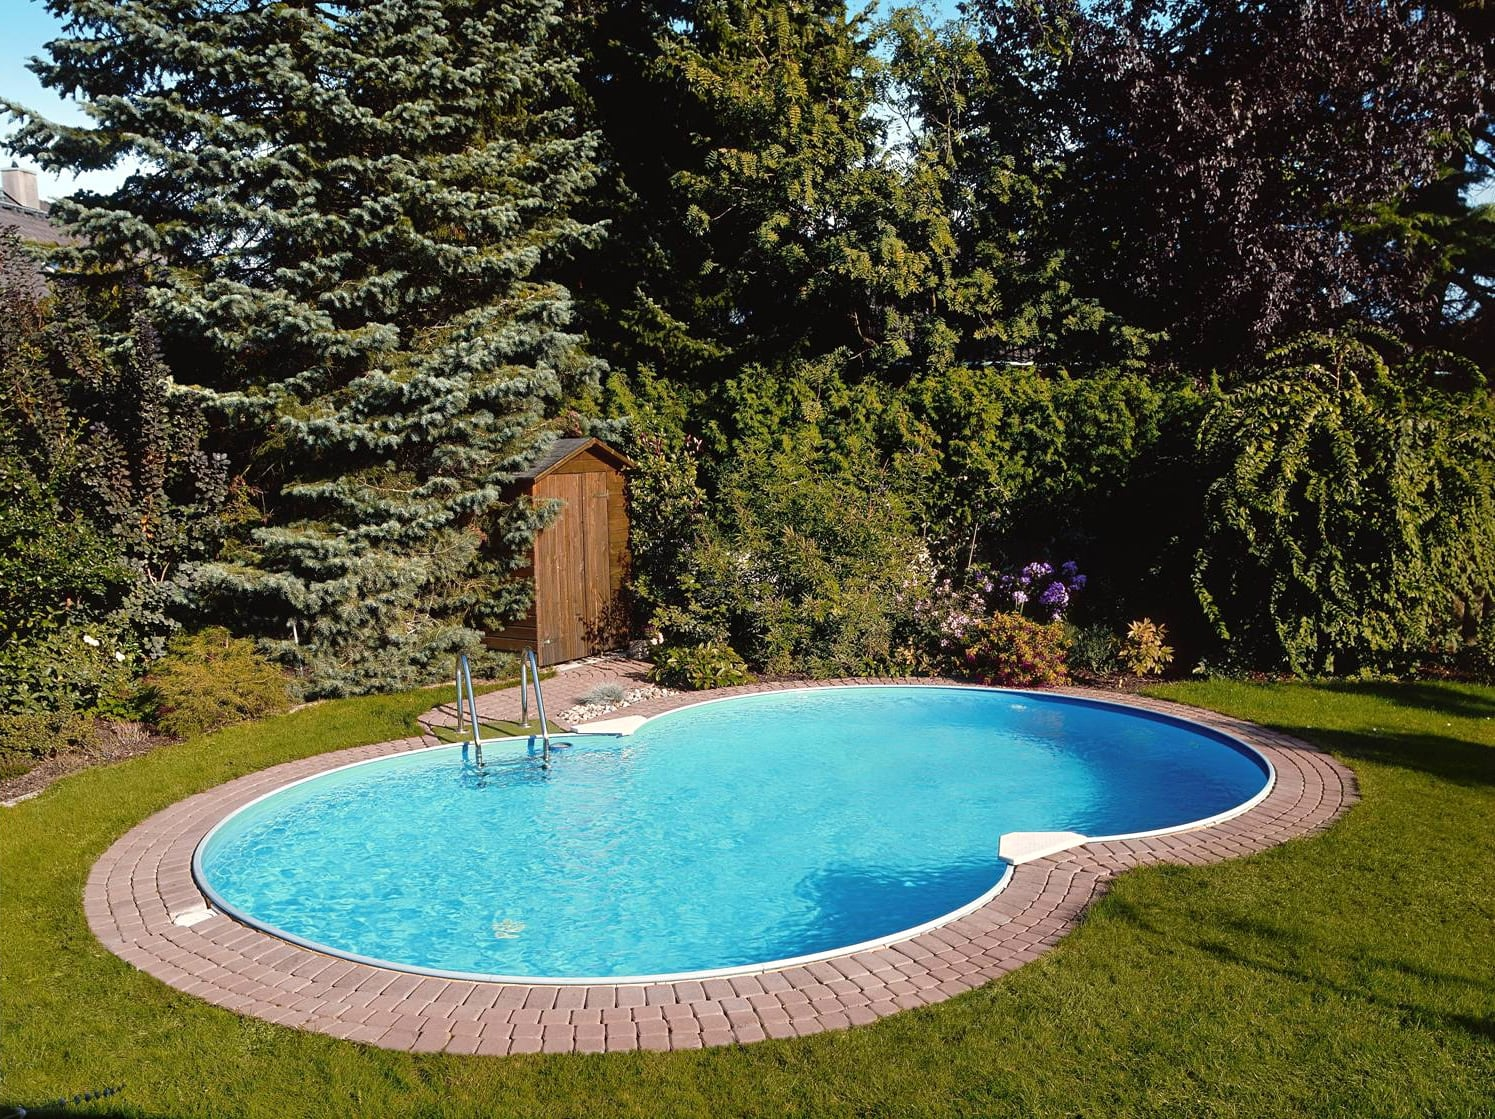 Piscineitalia kit piscina interrata in acciaio skyblue - Piscine interrate in acciaio ...